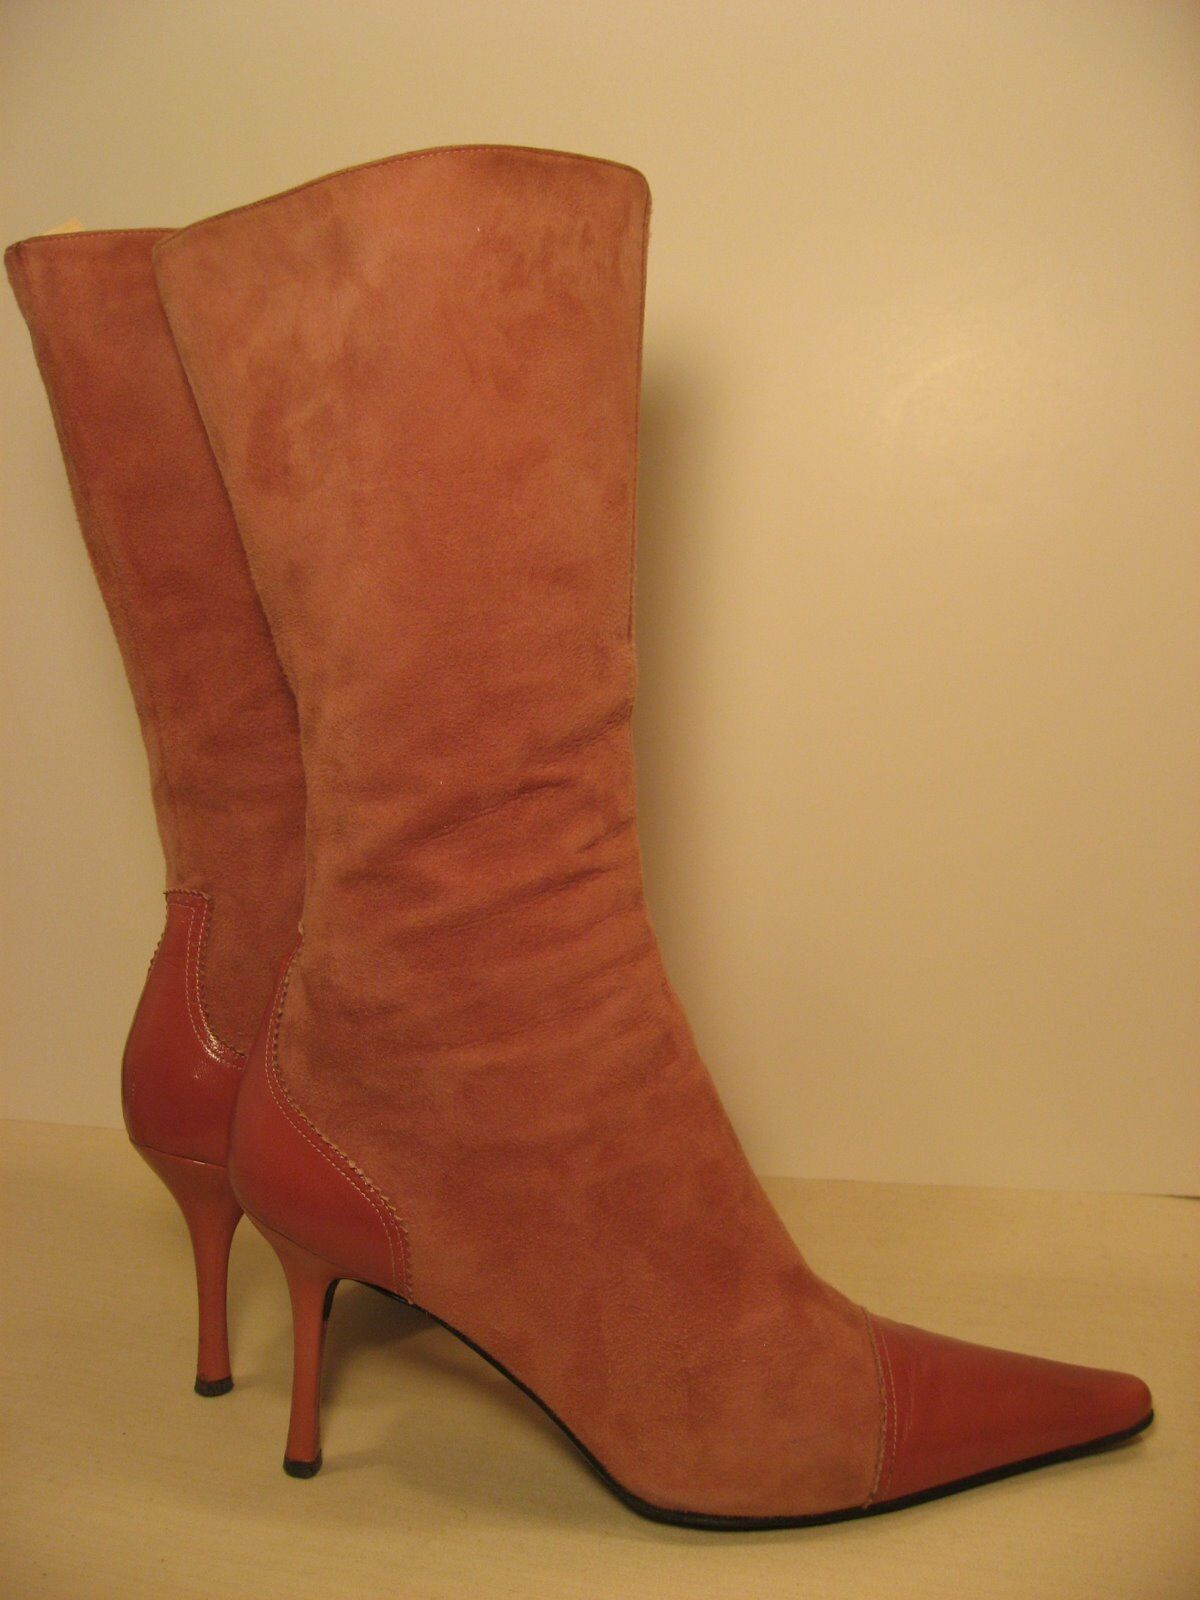 Guiseppe Zanotti Vicini Calf High Pink Suede Leather Boots 39 1 2 or 9